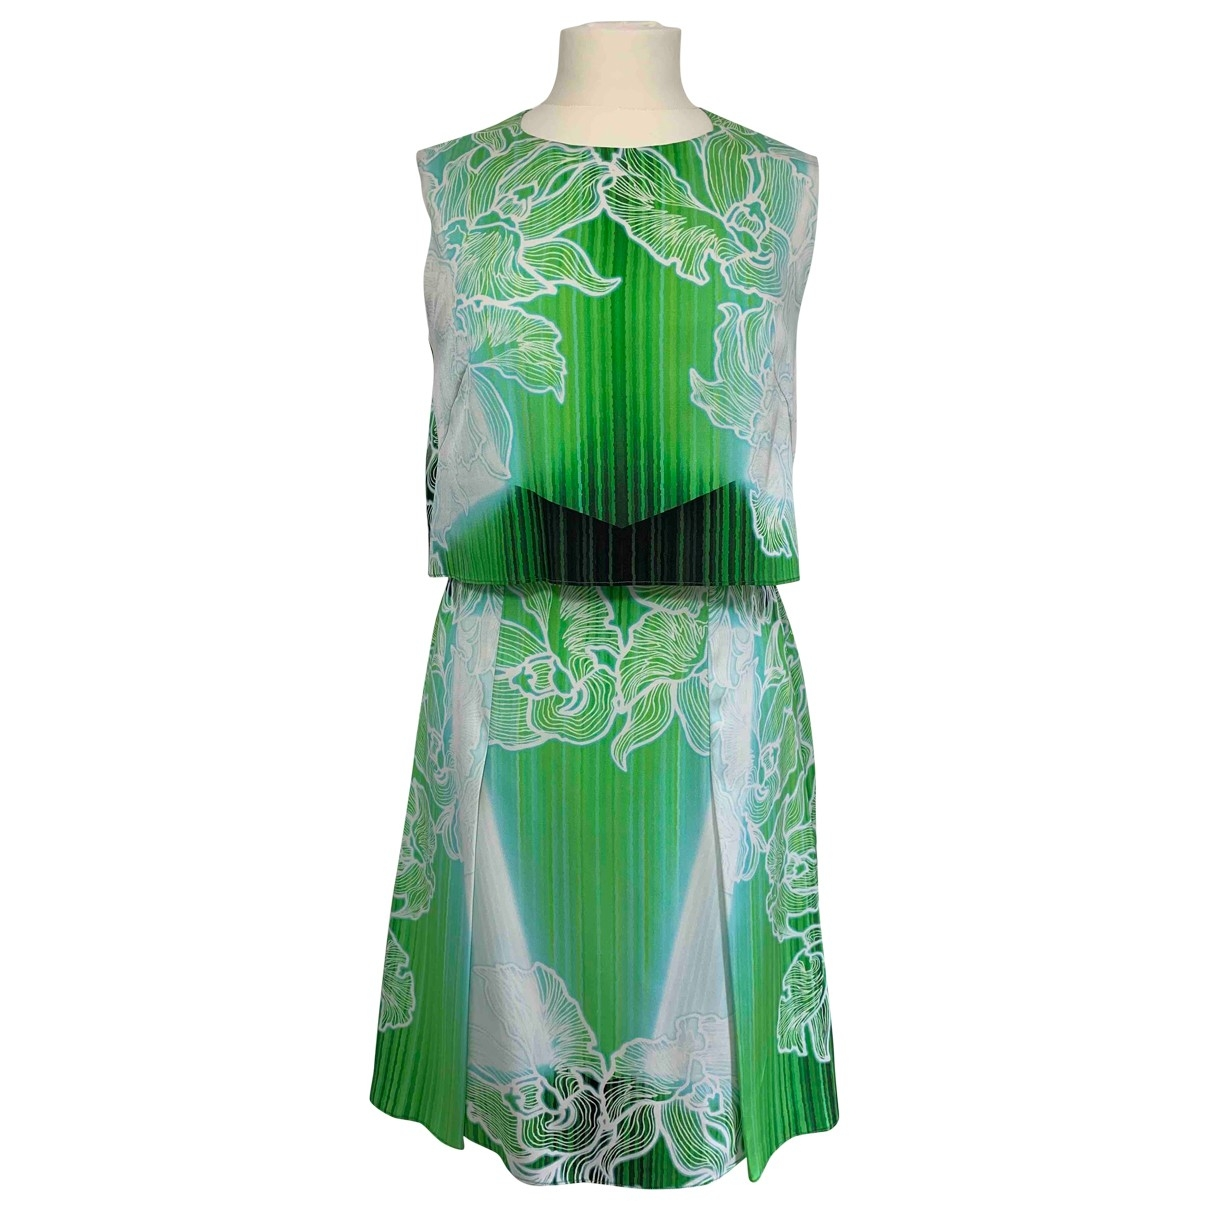 Peter Pilotto \N Green Silk dress for Women 10 UK